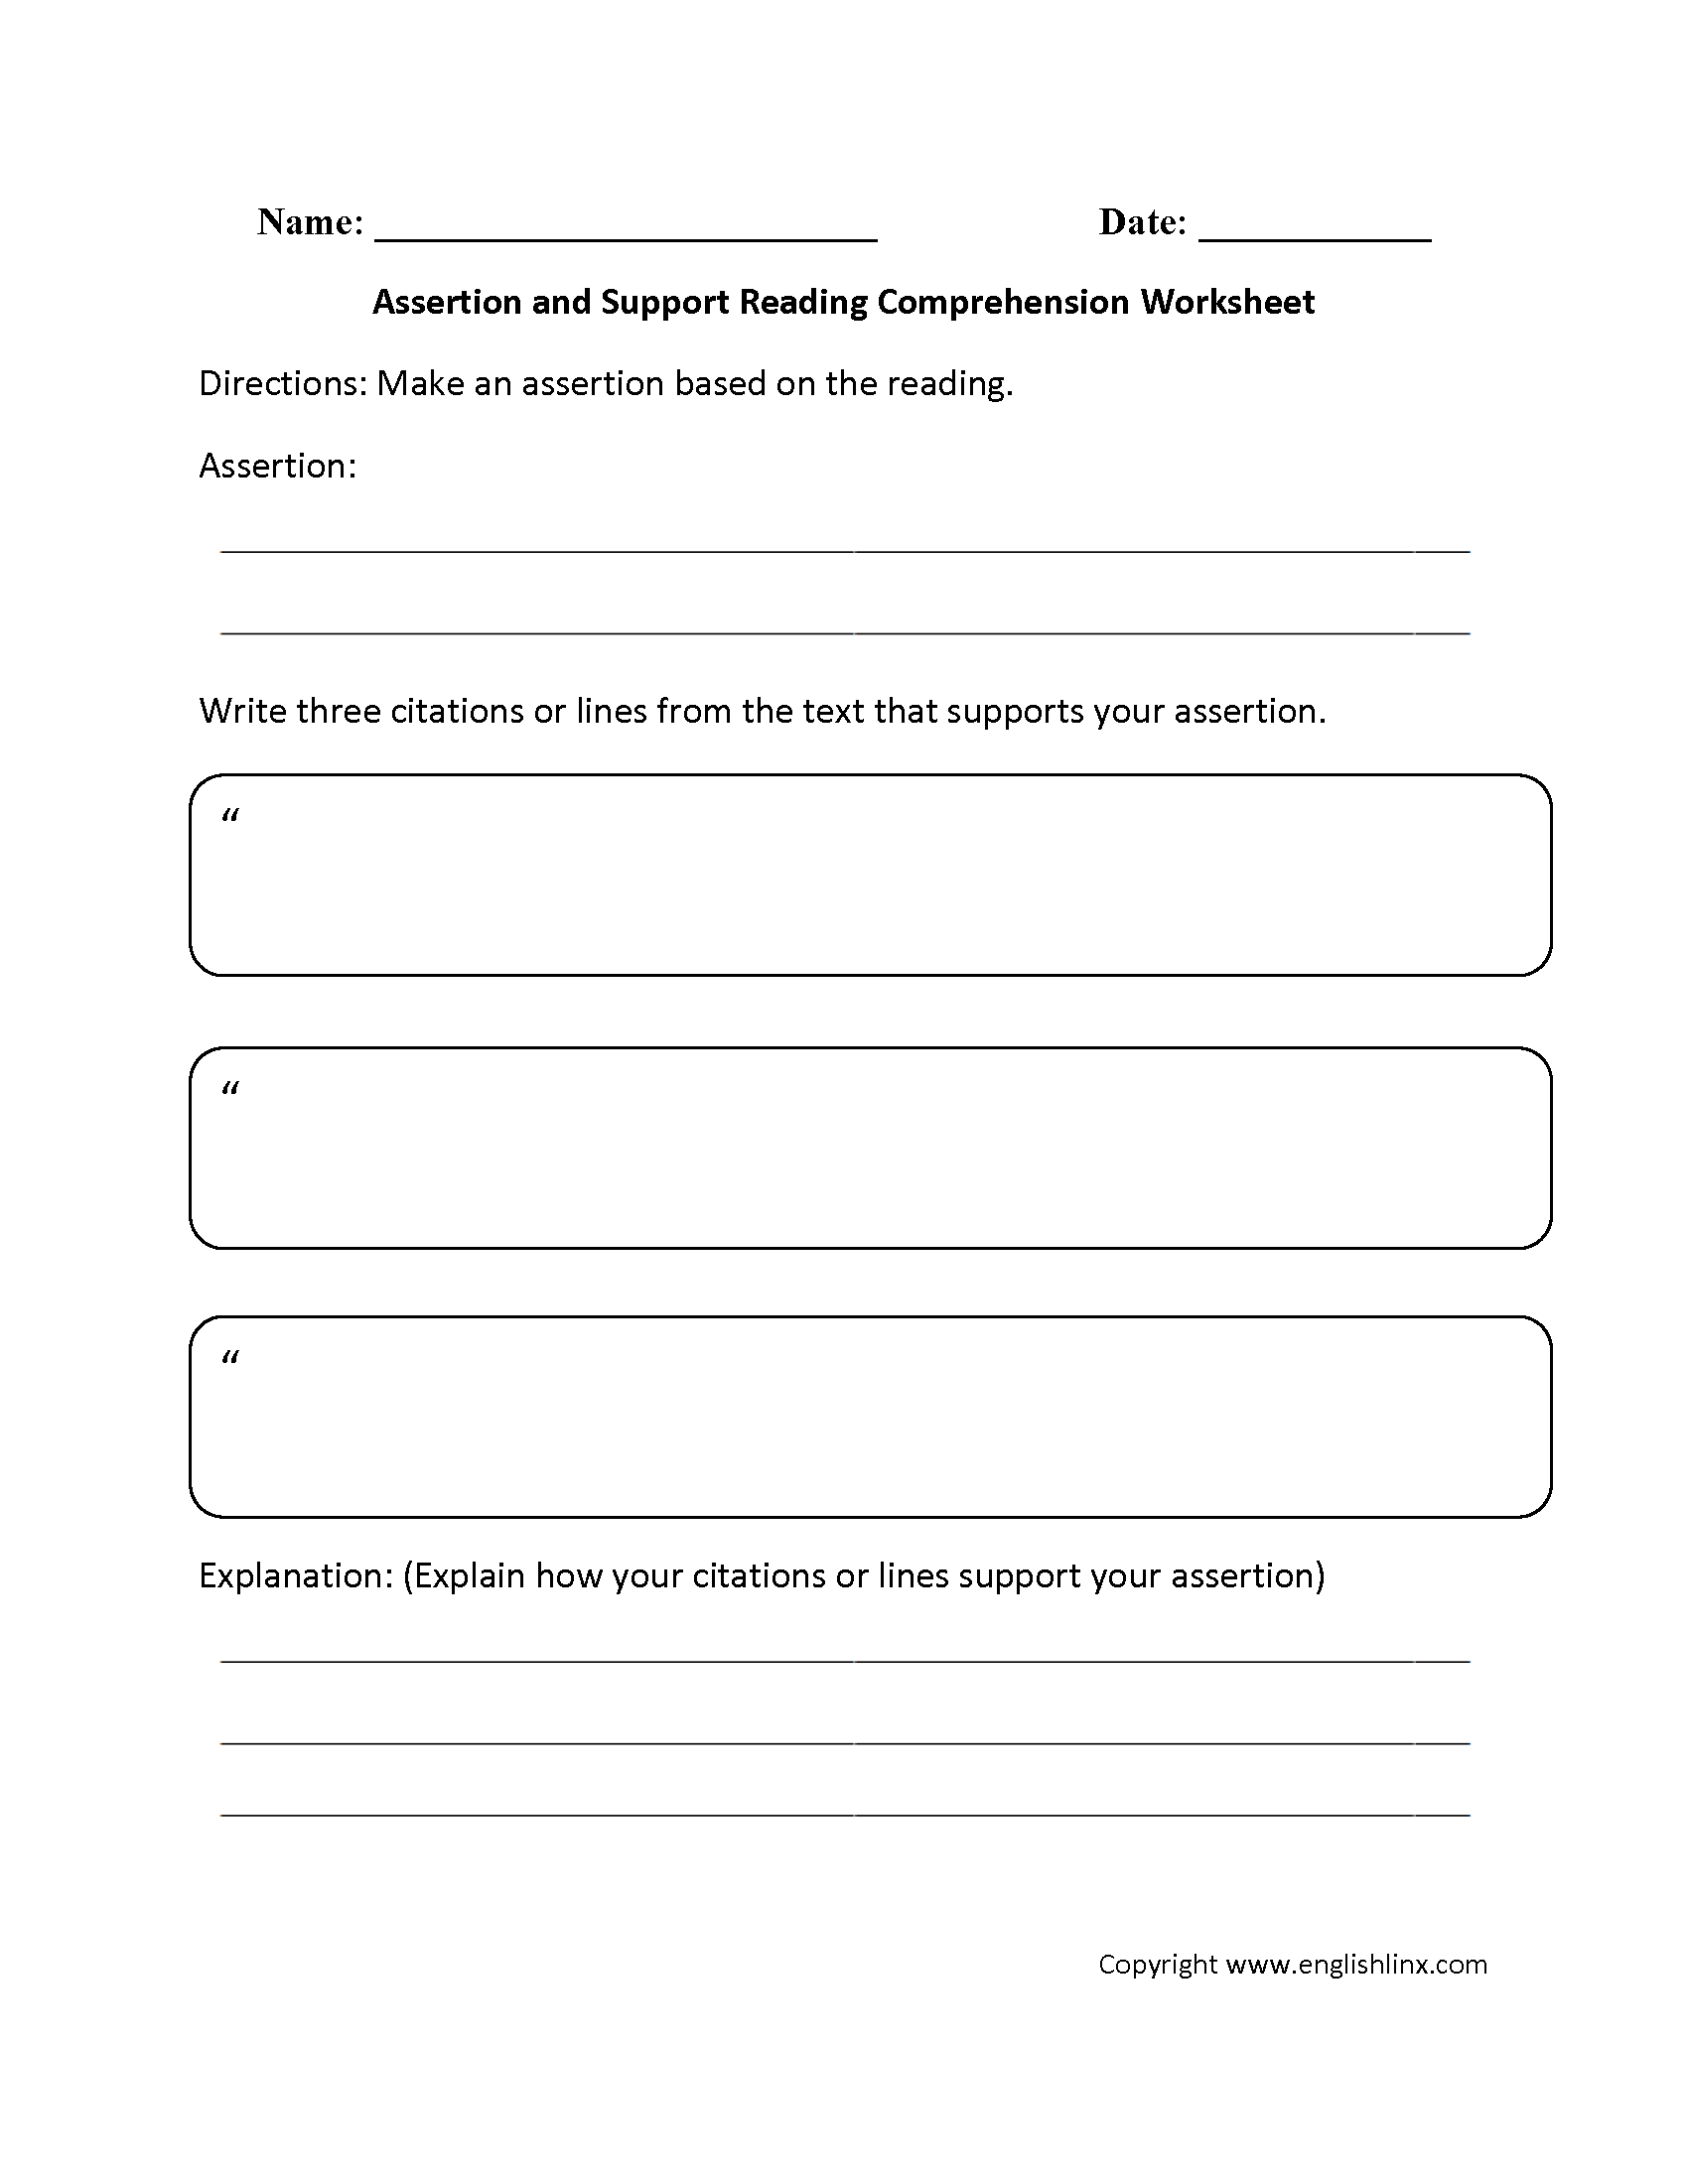 Worksheet Comprehension Reading englishlinx com reading comprehension worksheets worksheet